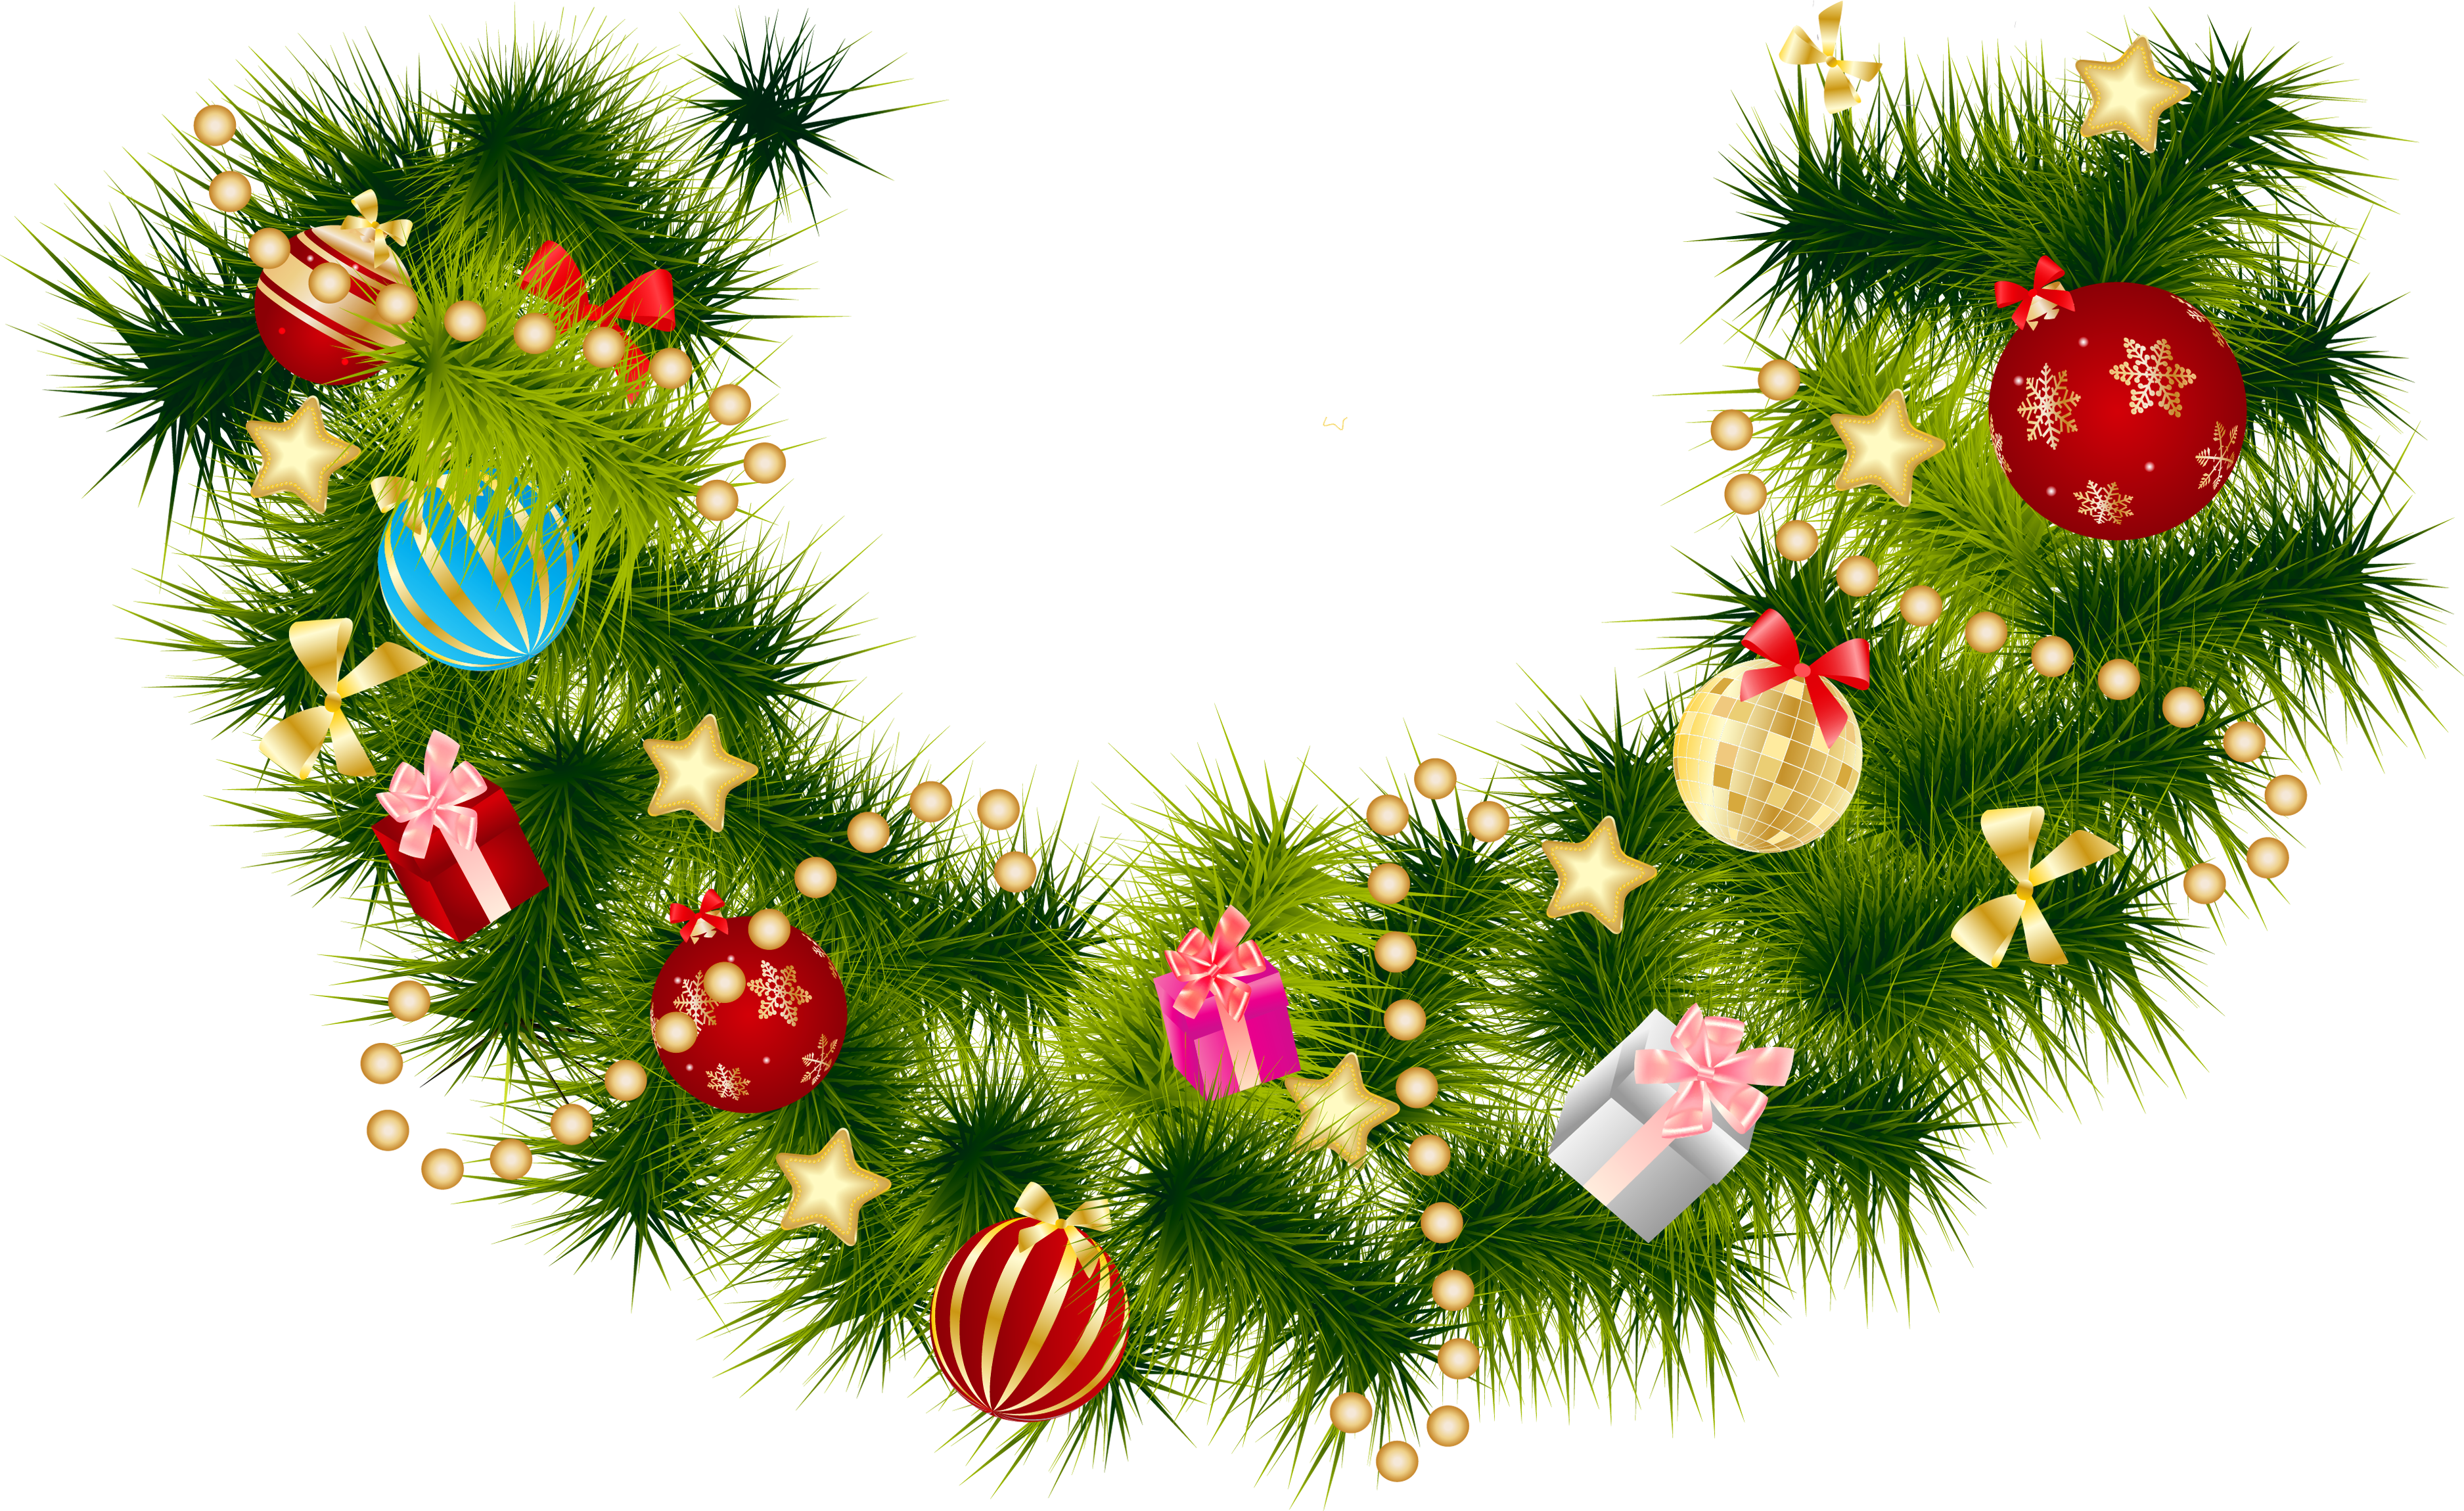 Pine branch with ornaments. Garland clipart christmas tree garland